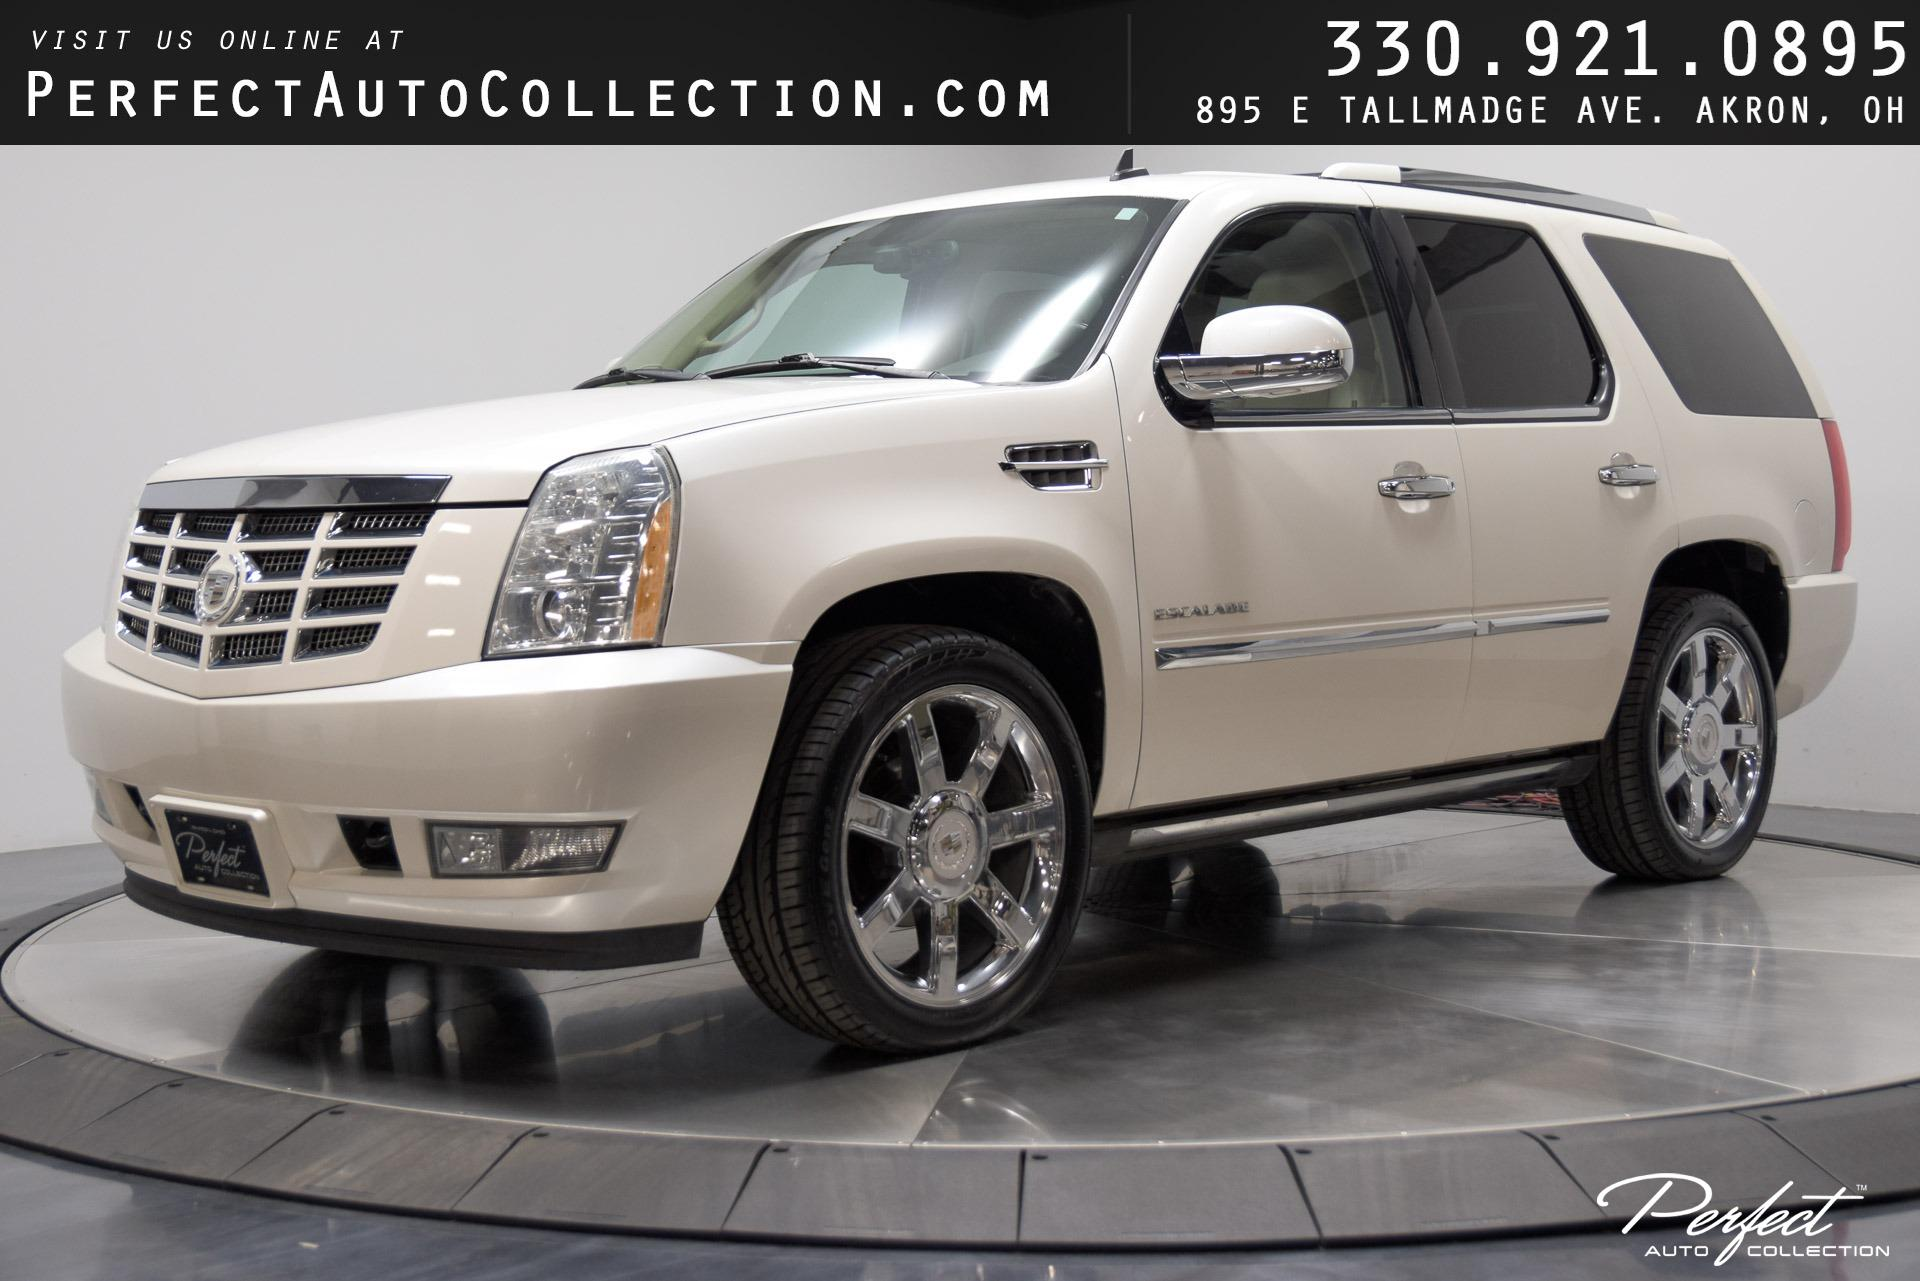 Used 2010 Cadillac Escalade Premium for sale $15,895 at Perfect Auto Collection in Akron OH 44310 1